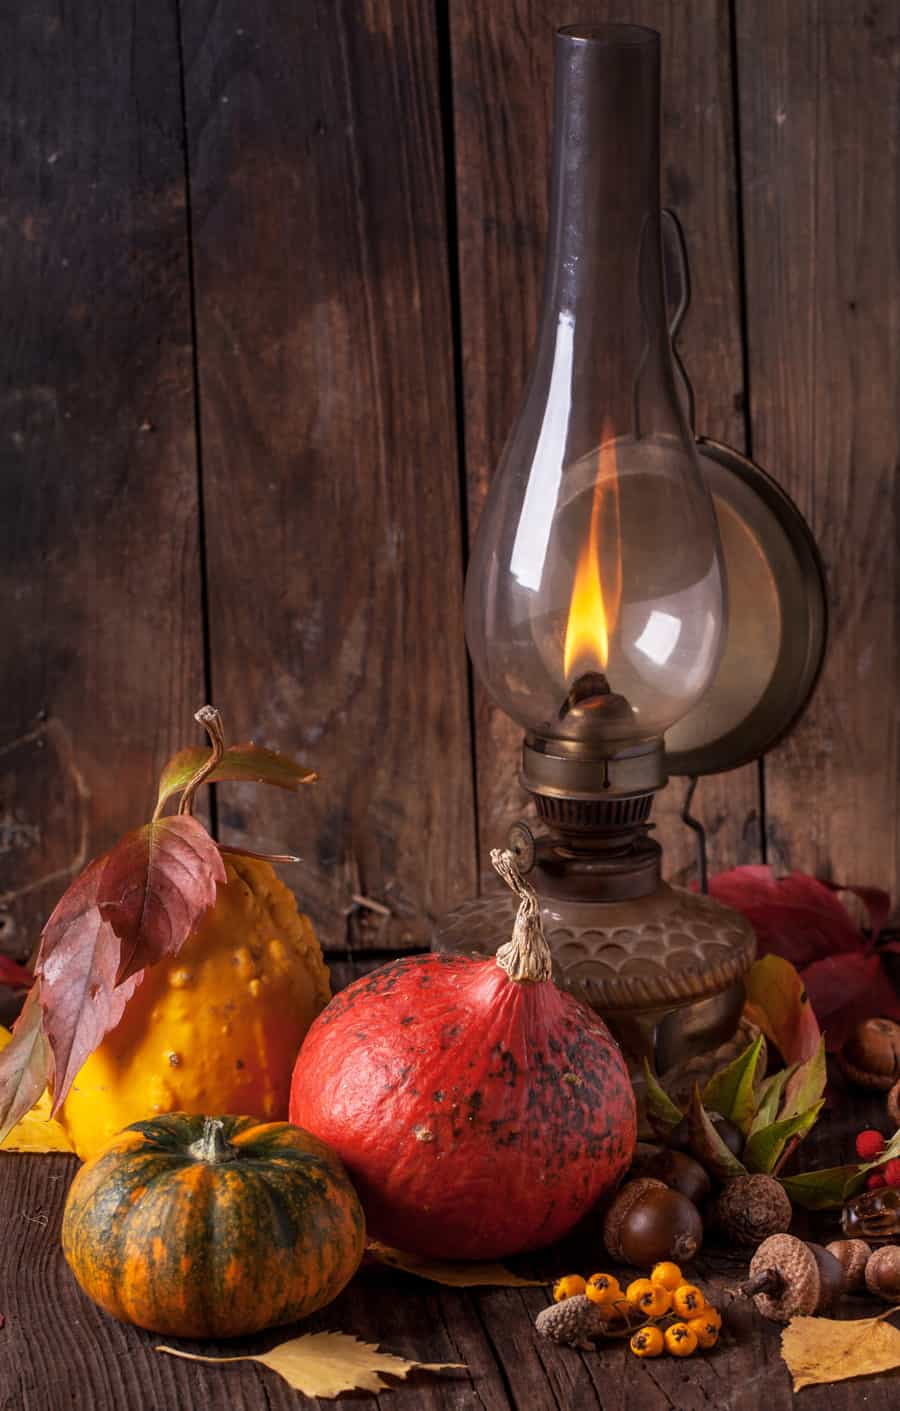 a kerosene lamp with fall setting